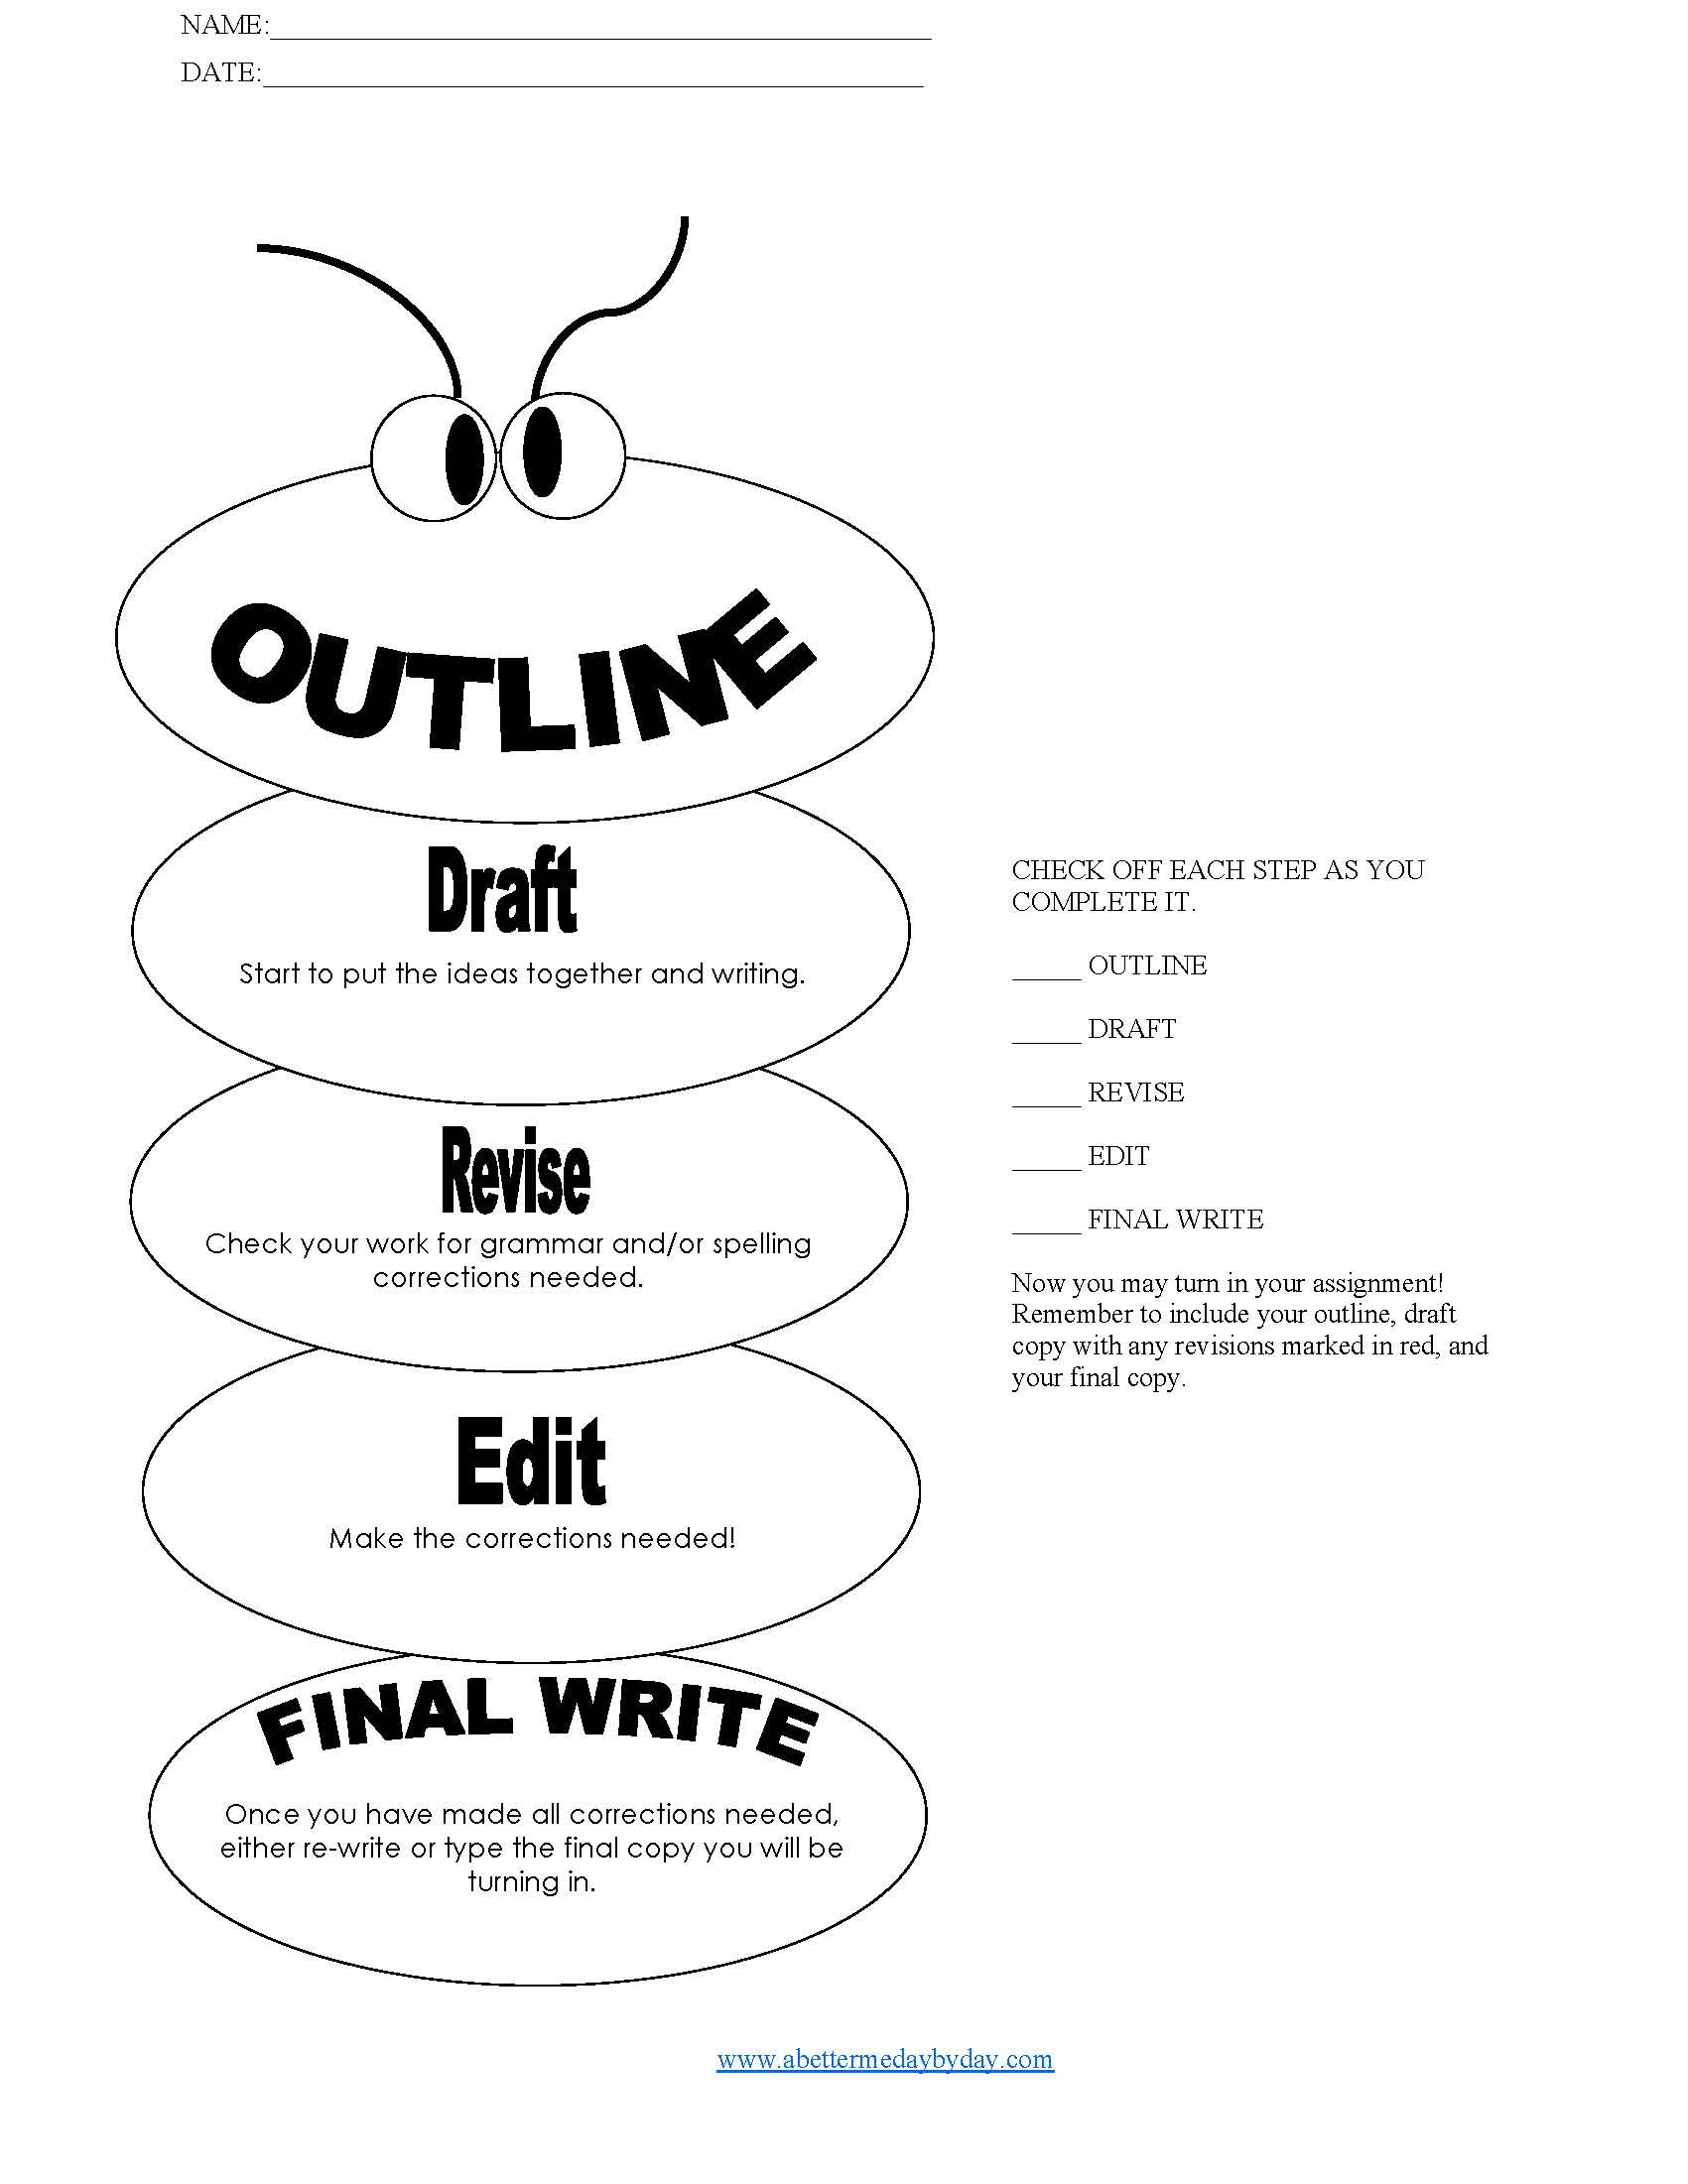 How to Use Graphic Organizers to Improve Academic Skills